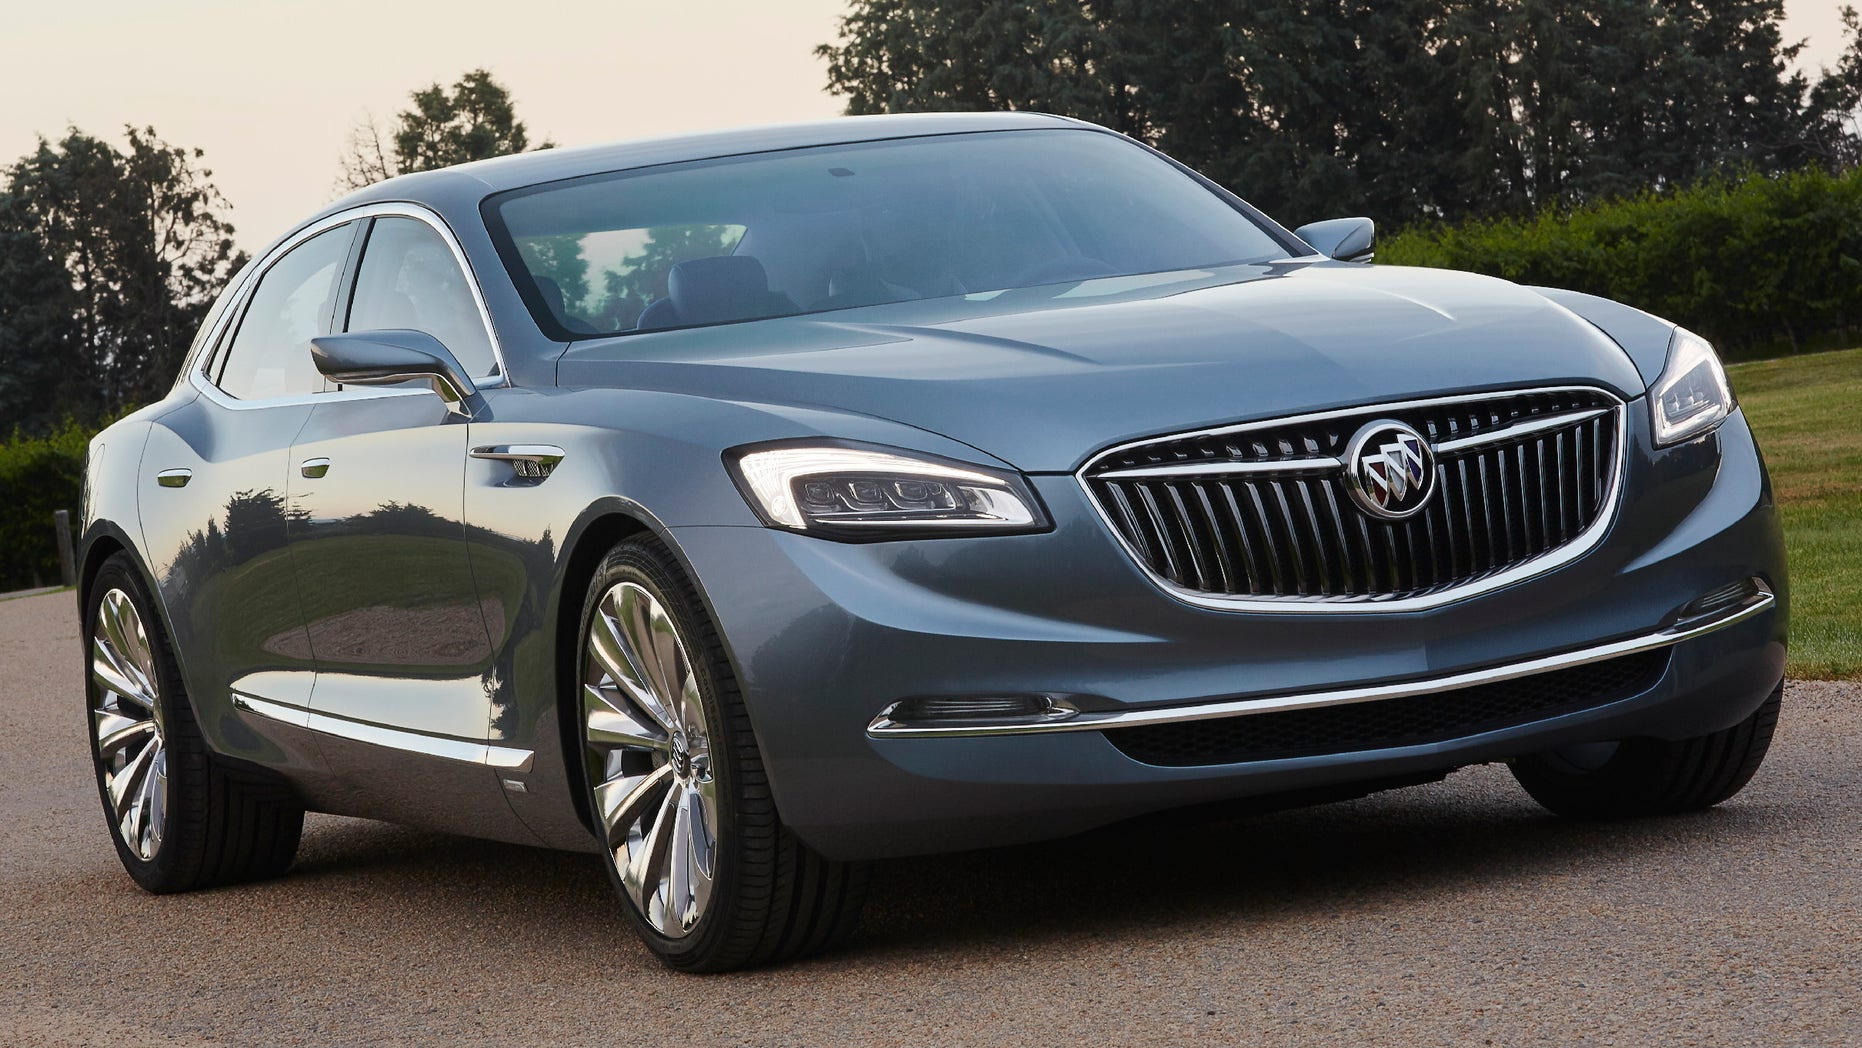 The Avenir is distinguished by its premium sports proportions and all-new interpretations of traditional Buick cues.